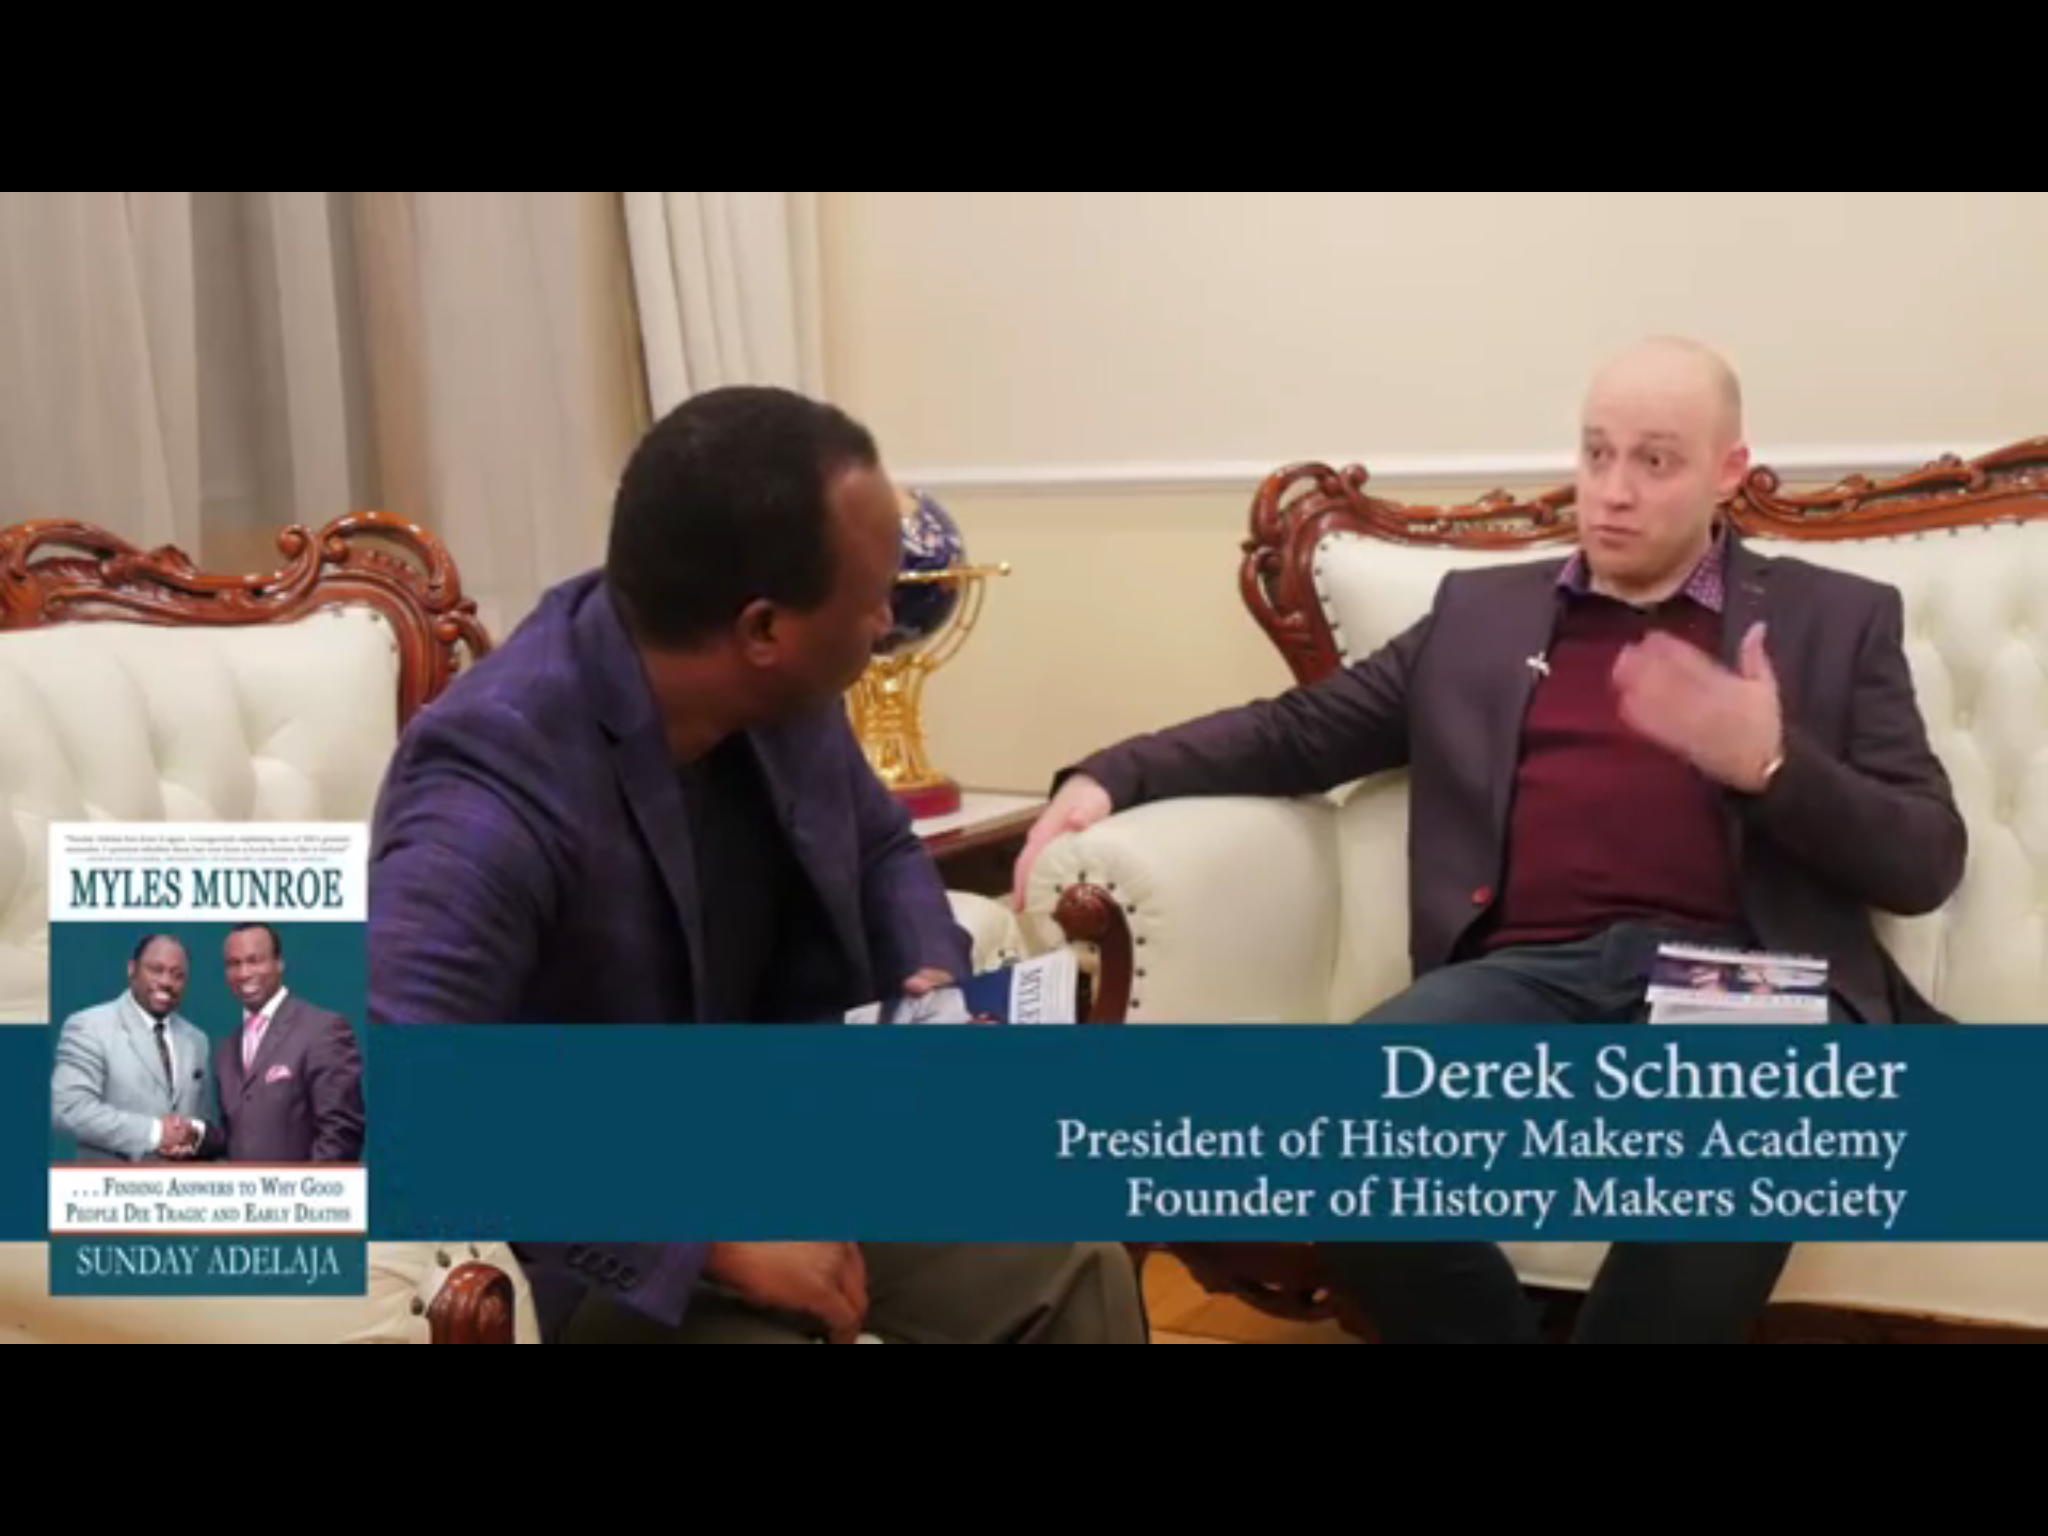 Derek Schneider Gets Cover Endorsement for Myles Munroe Book